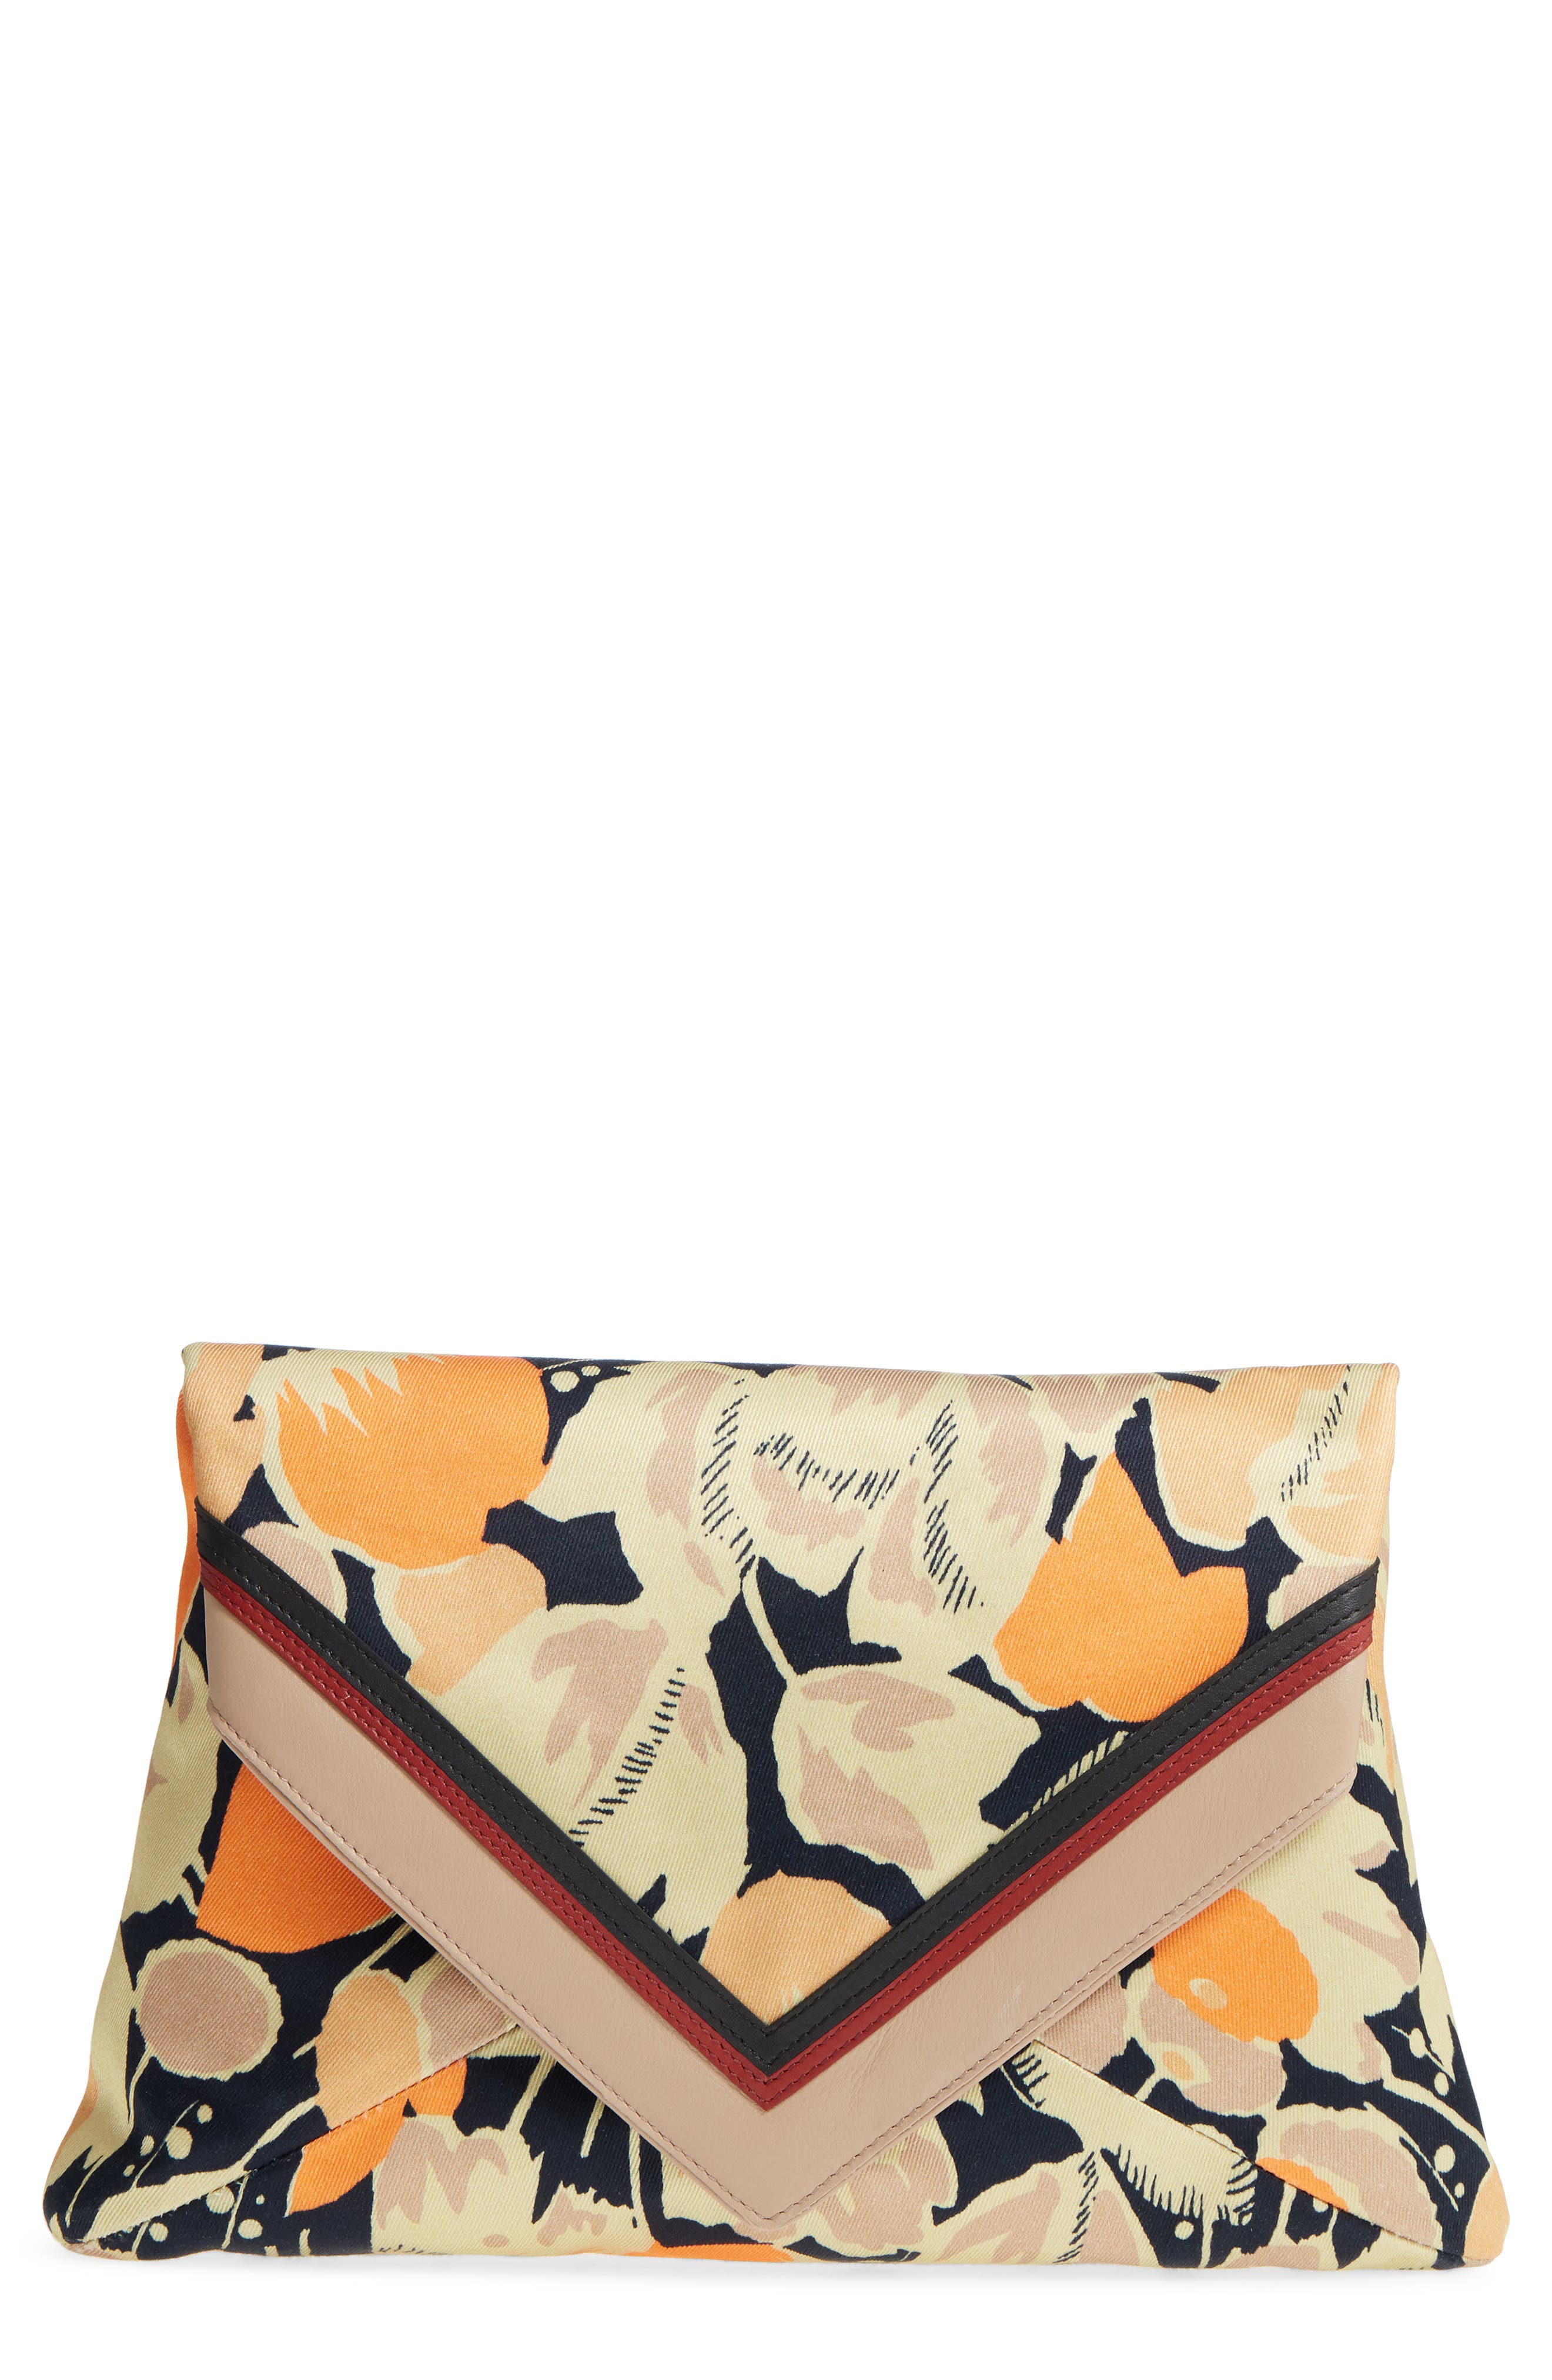 Dries Van Noten Floral Print Envelope Clutch